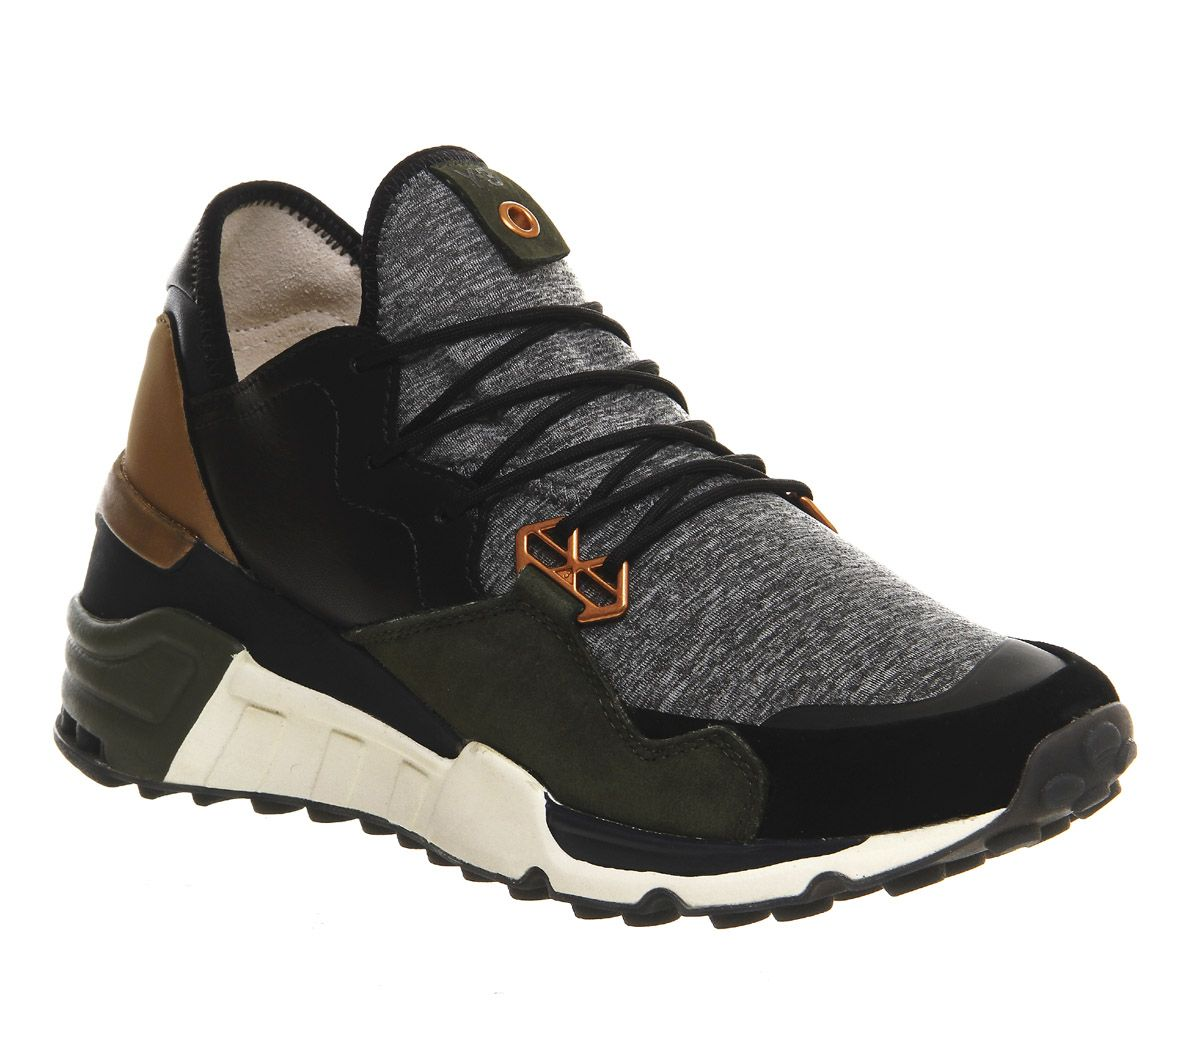 arrives d9e42 9010e Adidas Y3 Wedge Sock Run Cargo Black Marl - Womens sneakers